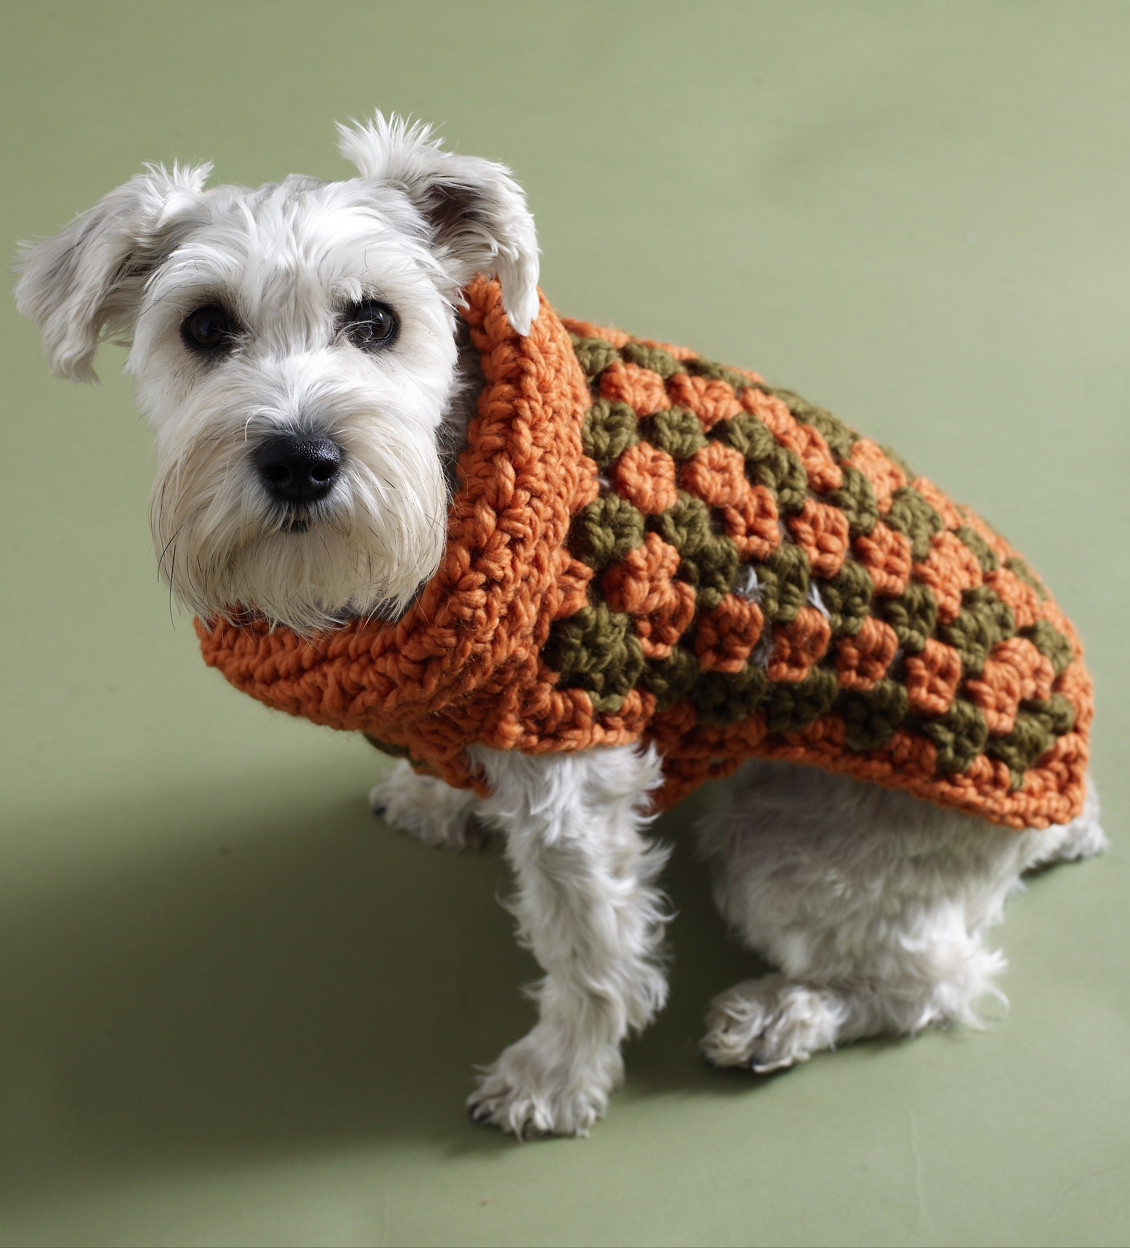 Dog Coat Pattern Free Awesome Keep Your Dog Warm with A Crochet Dog Sweater Crochet Of Contemporary 42 Models Dog Coat Pattern Free